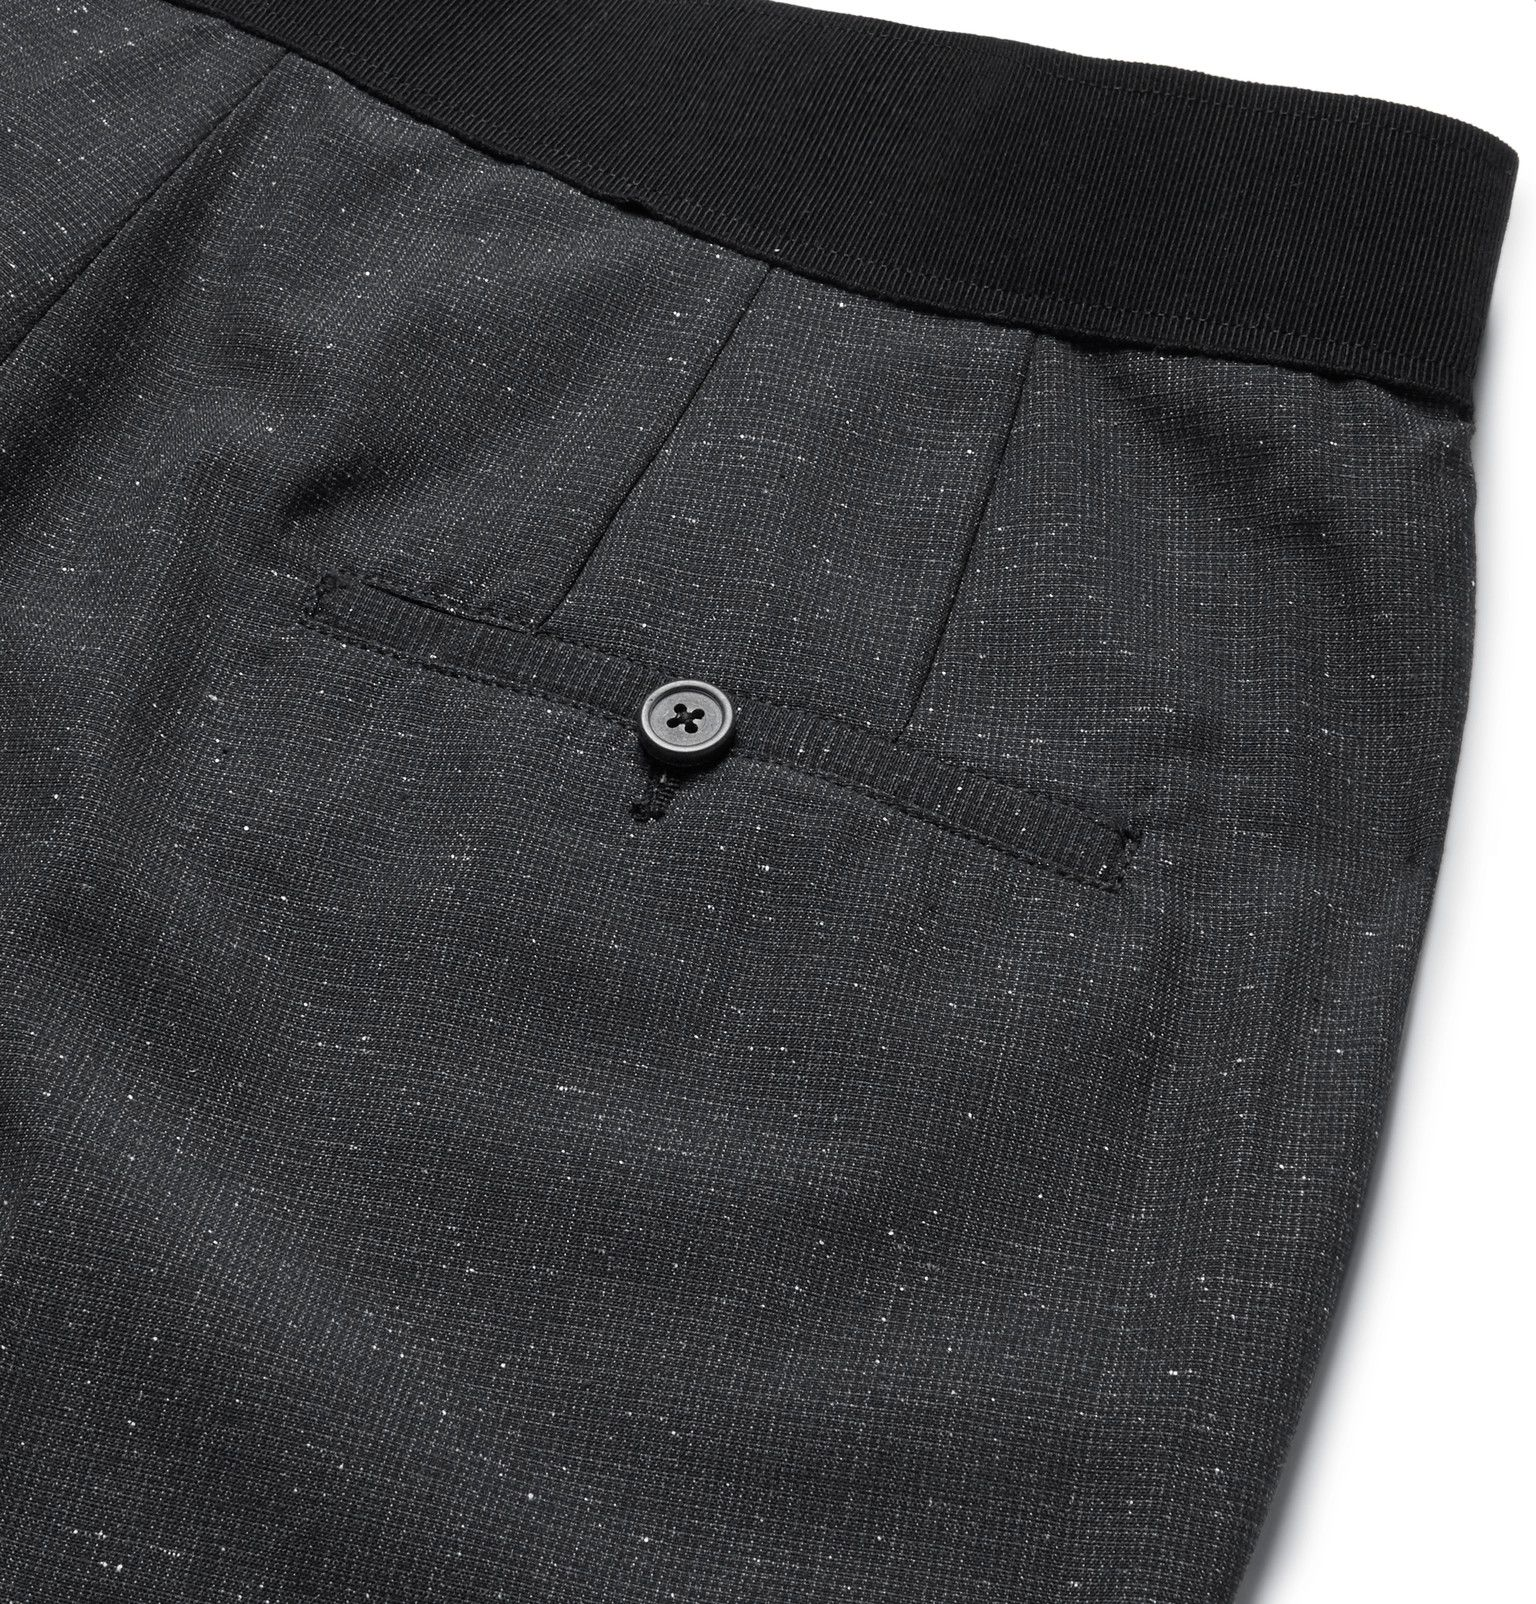 These <a href='http://www.mrporter.com/mens/Designers/Lanvin'>Lanvin</a> trousers exemplify the house's unmatched tailoring expertise. Designed in the most subtle puppytooth, they're crafted from a soft wool and silk-blend that's flecked with slubbed white threads. The elasticated waistband gives them the comfortable fit of sweats, while the neat slim cut and deep charcoal hue make them entirely smart.